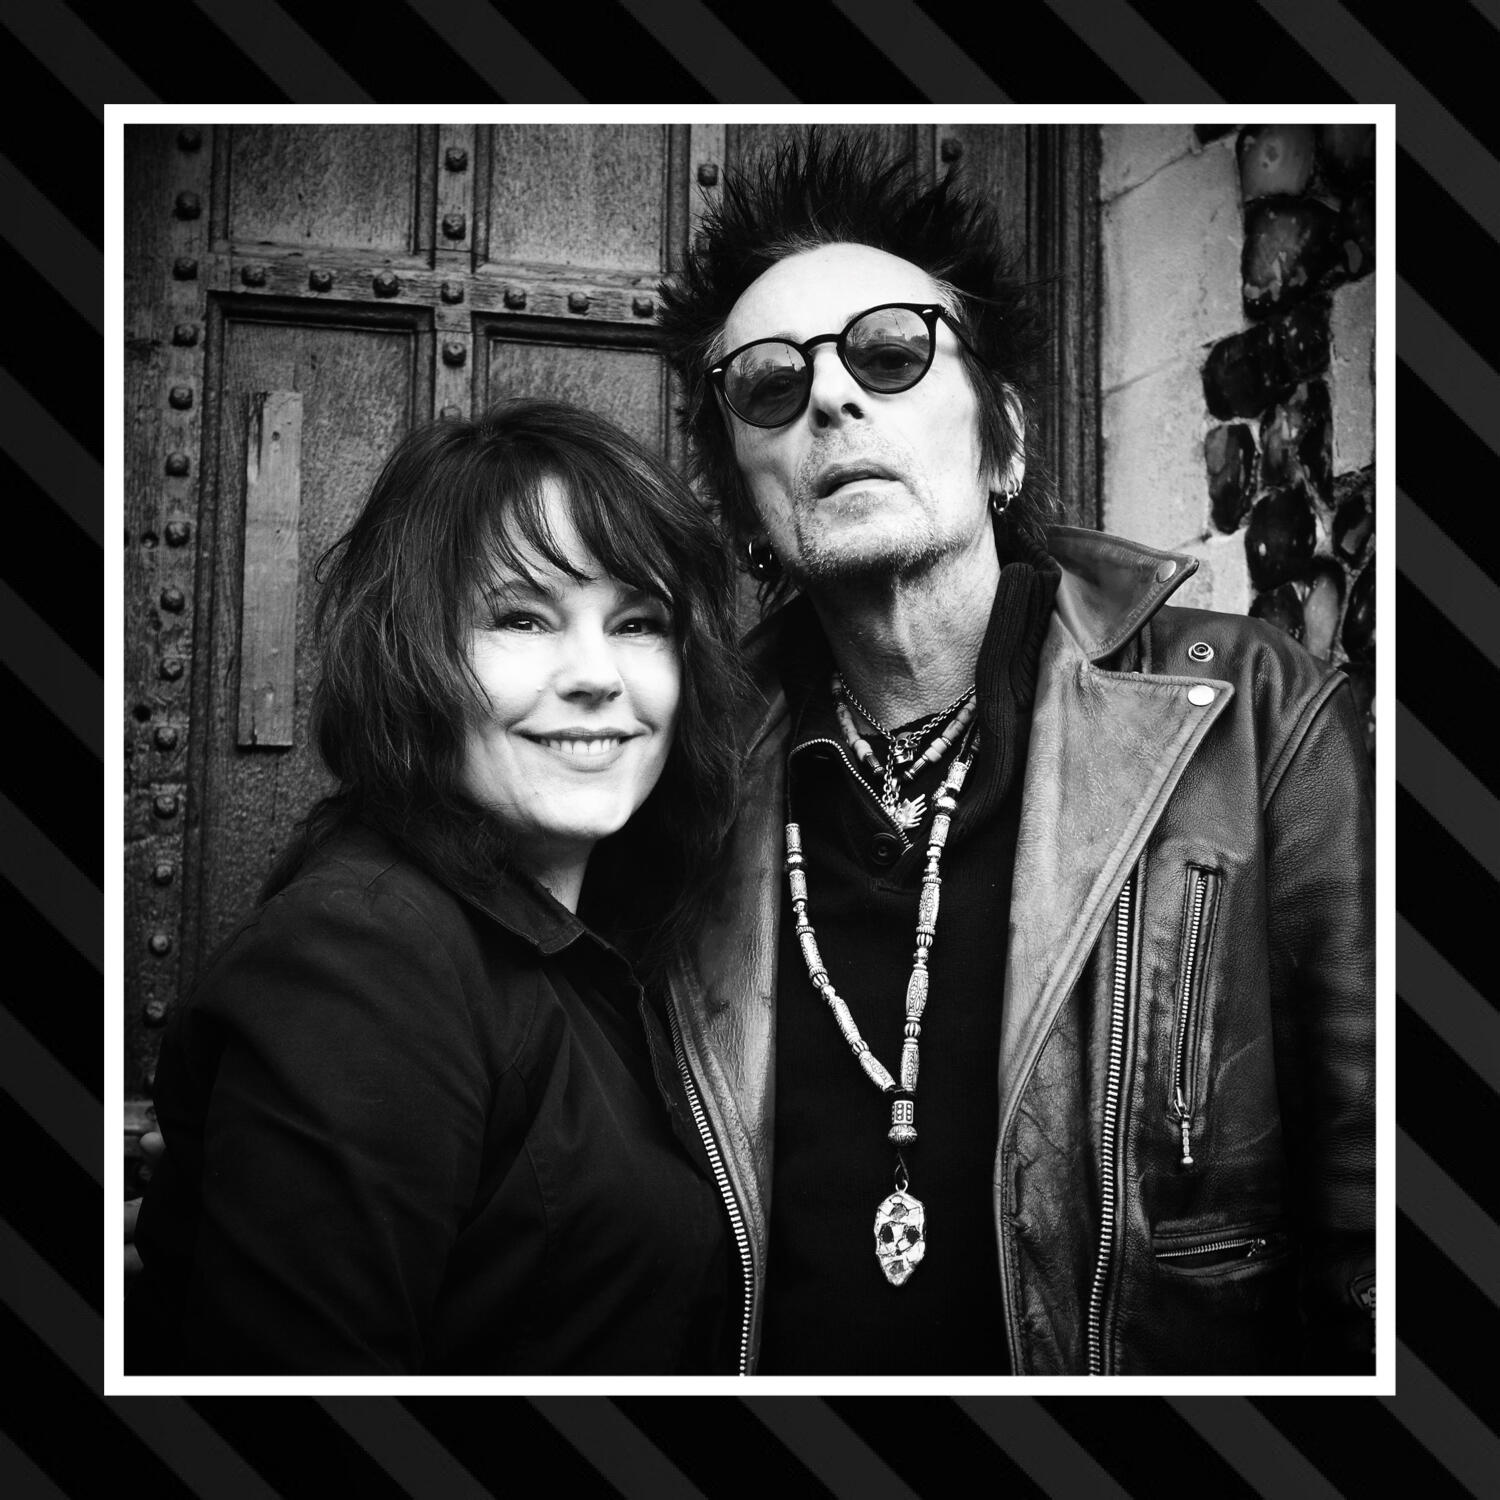 26: The one with The New York Doll's Earl Slick